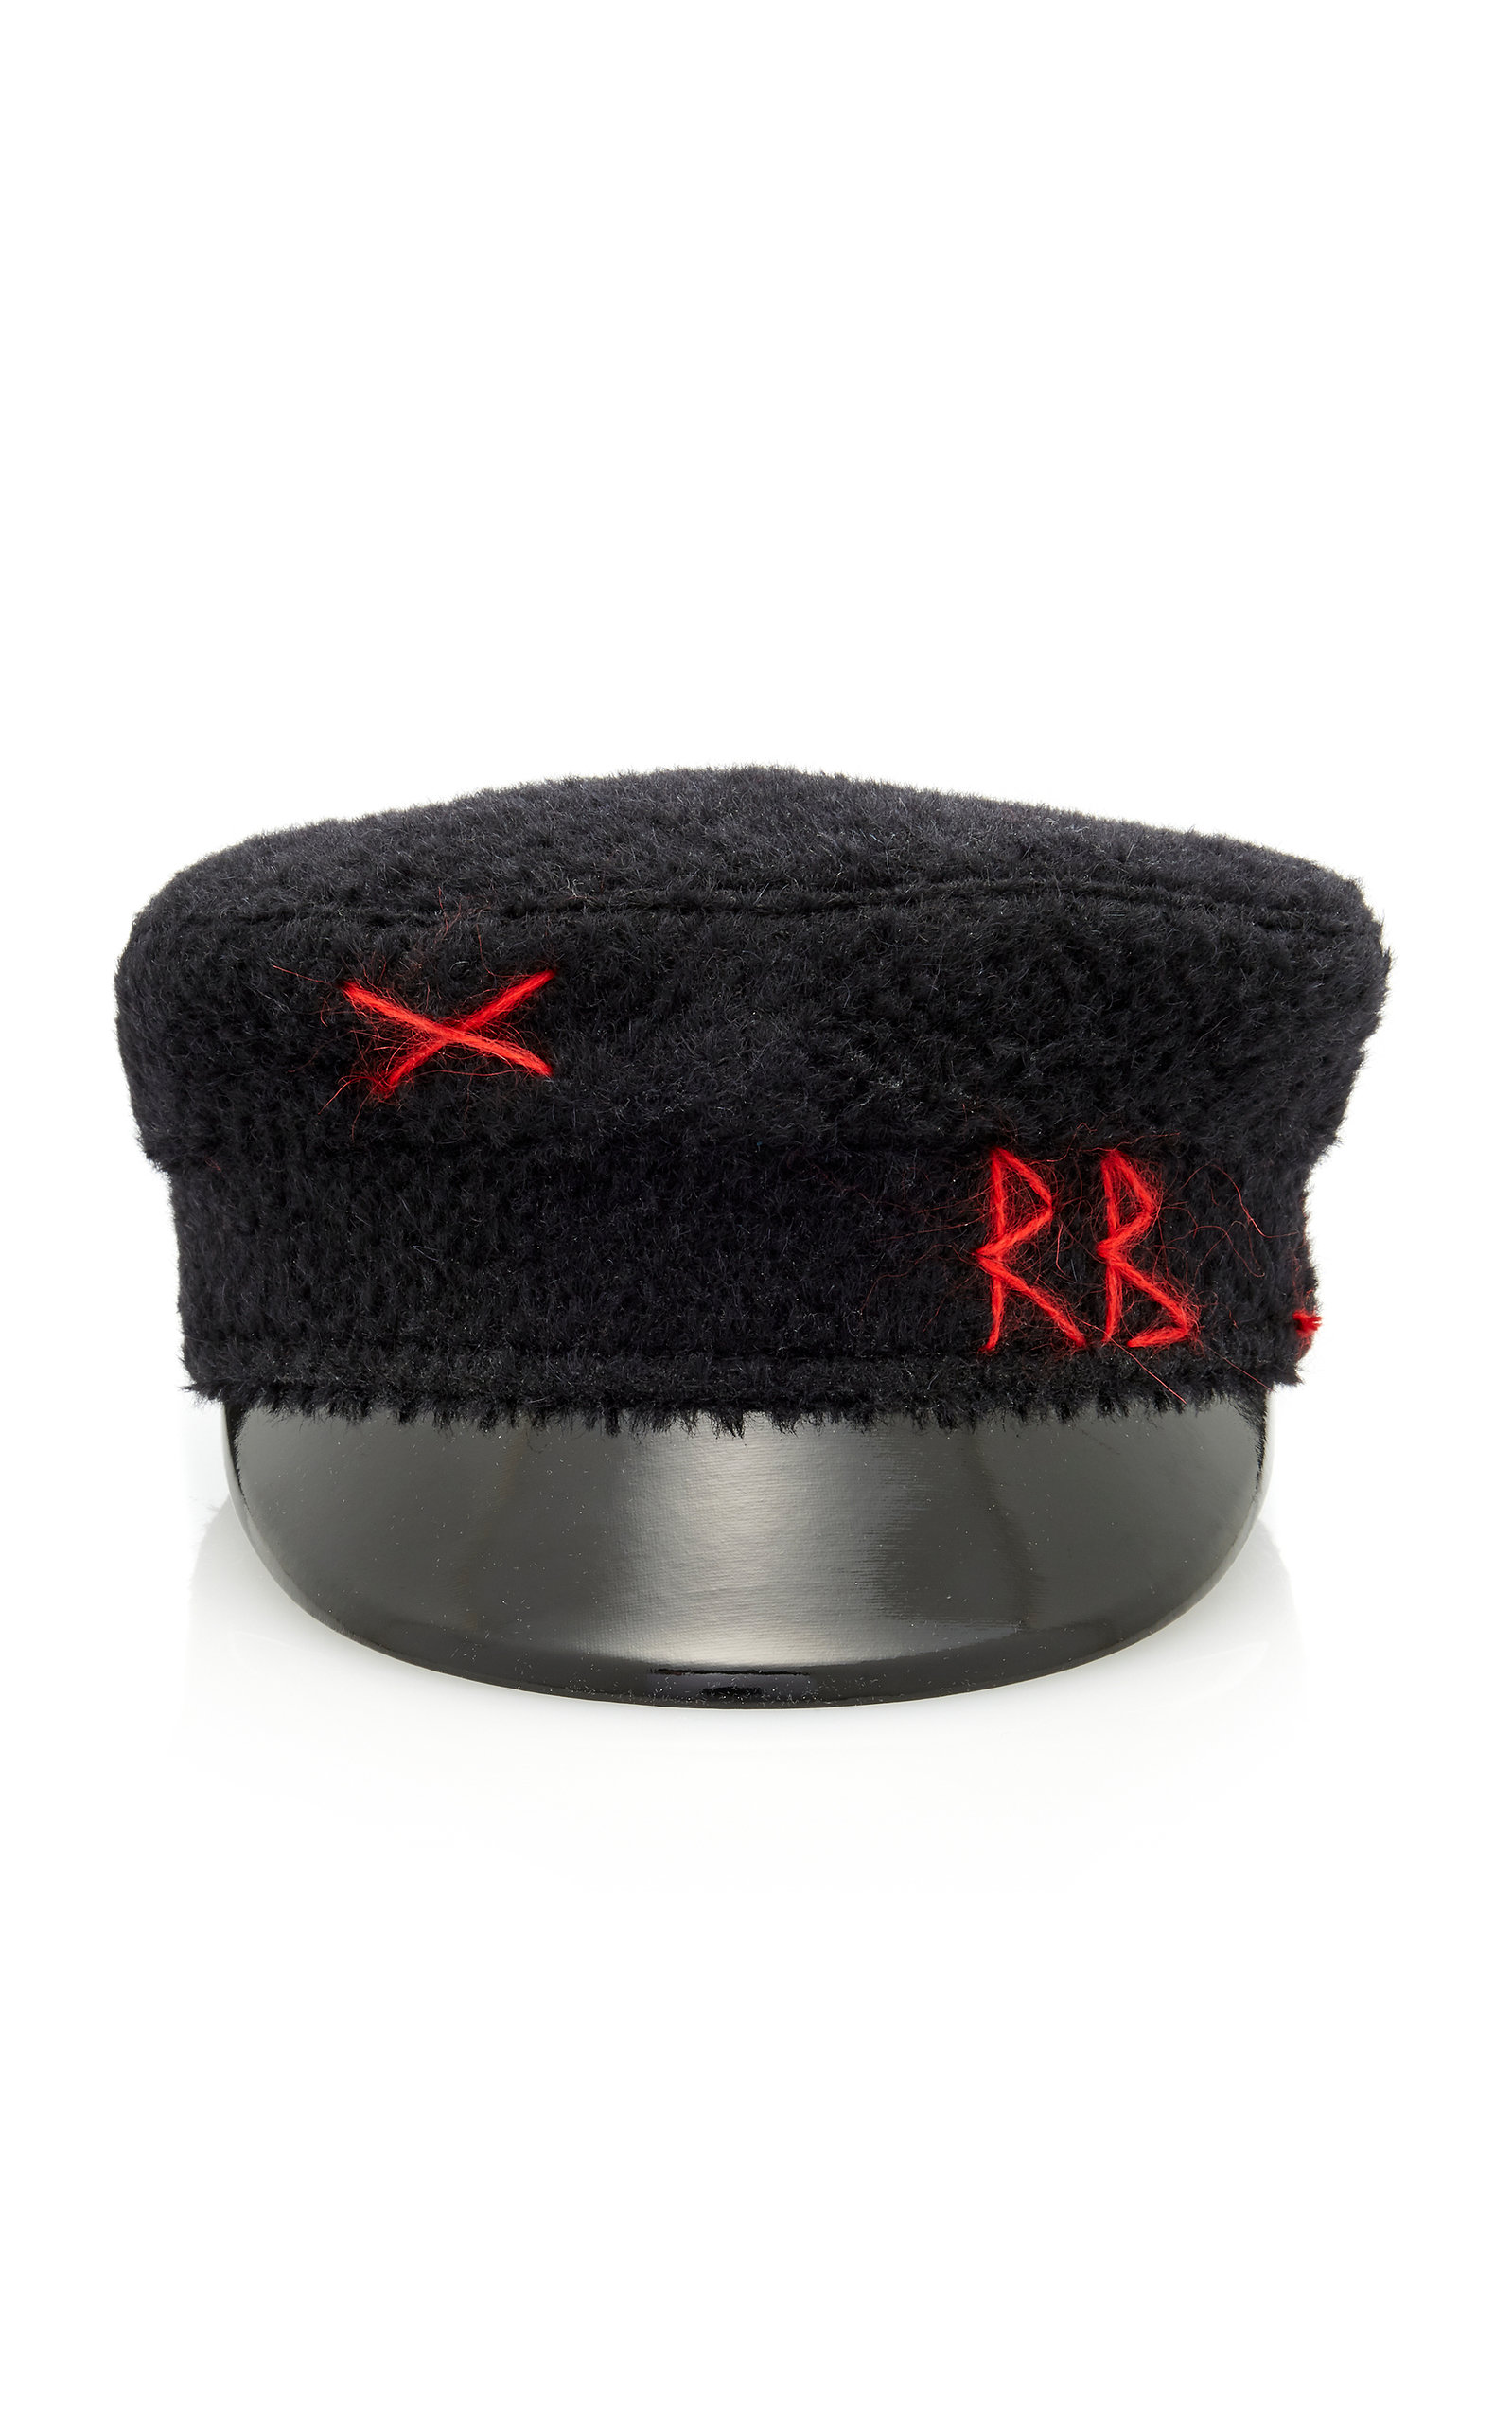 Ruslan Baginskiy Hats | Ruslan Baginskiy Hats Embroidered Wool Baker Boy Cap | Clouty